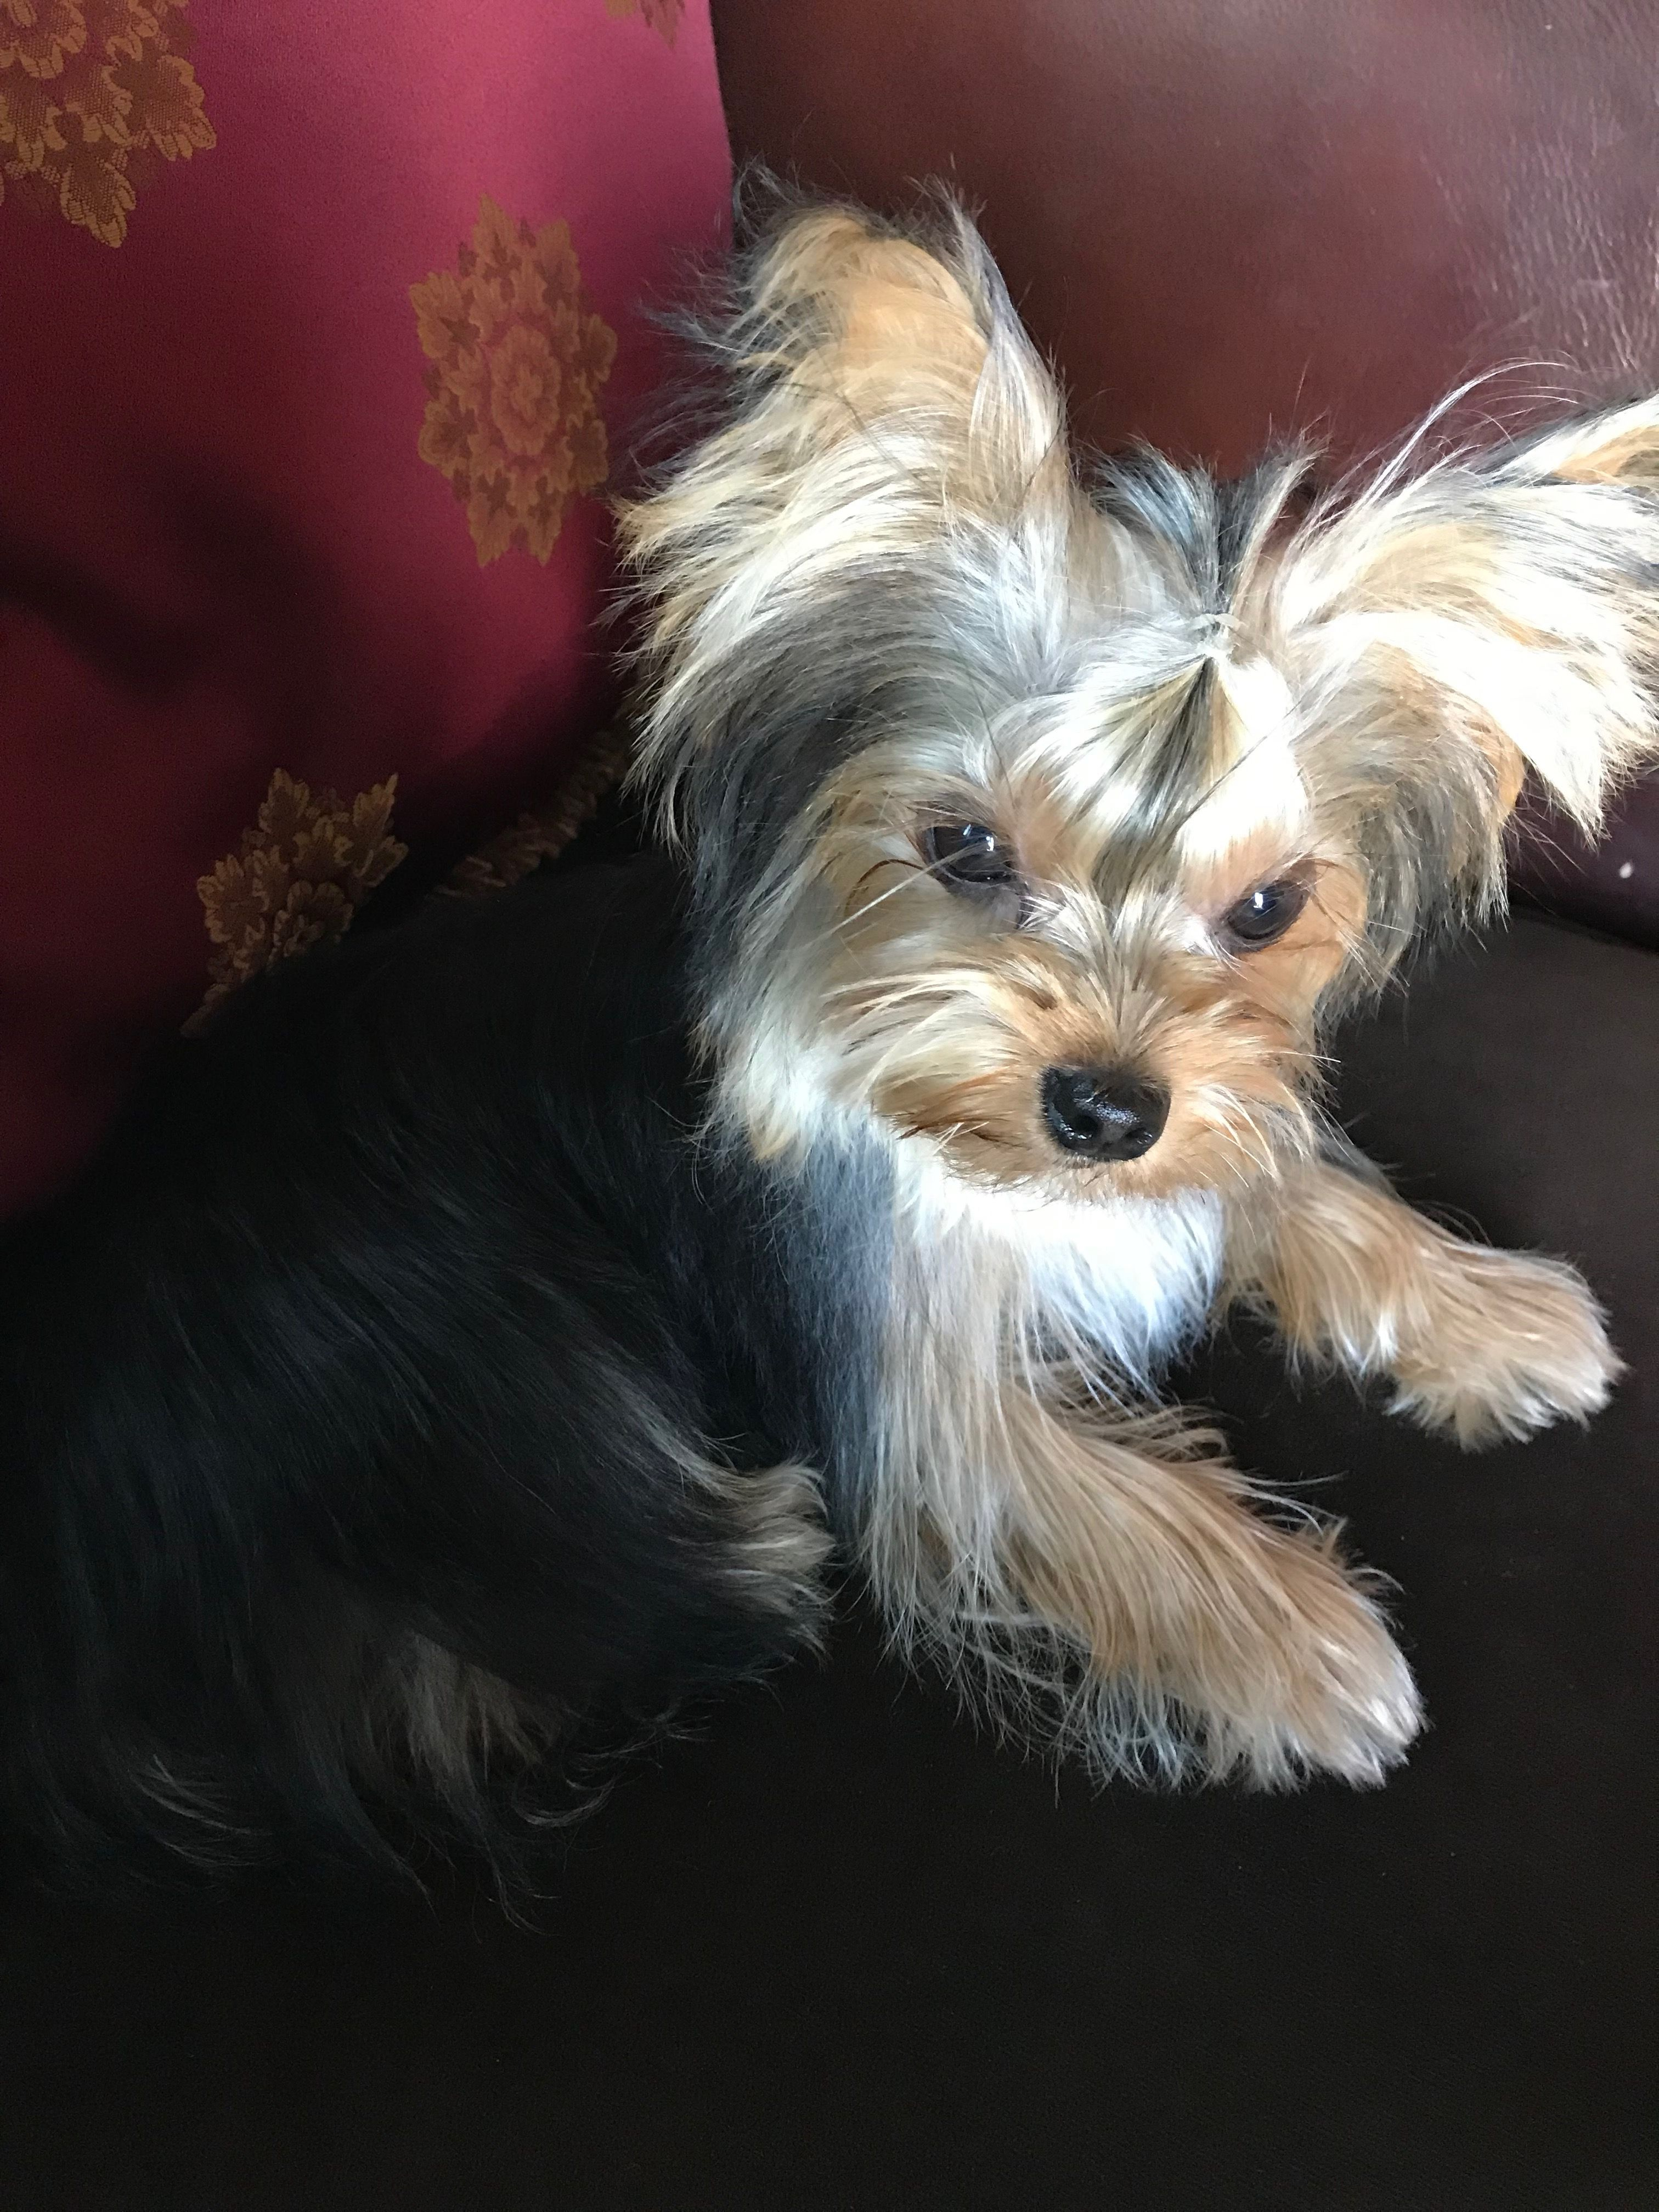 Puppy Kaya With Images Yorkshire Terrier Yorkshire Terrier Puppies Terrier